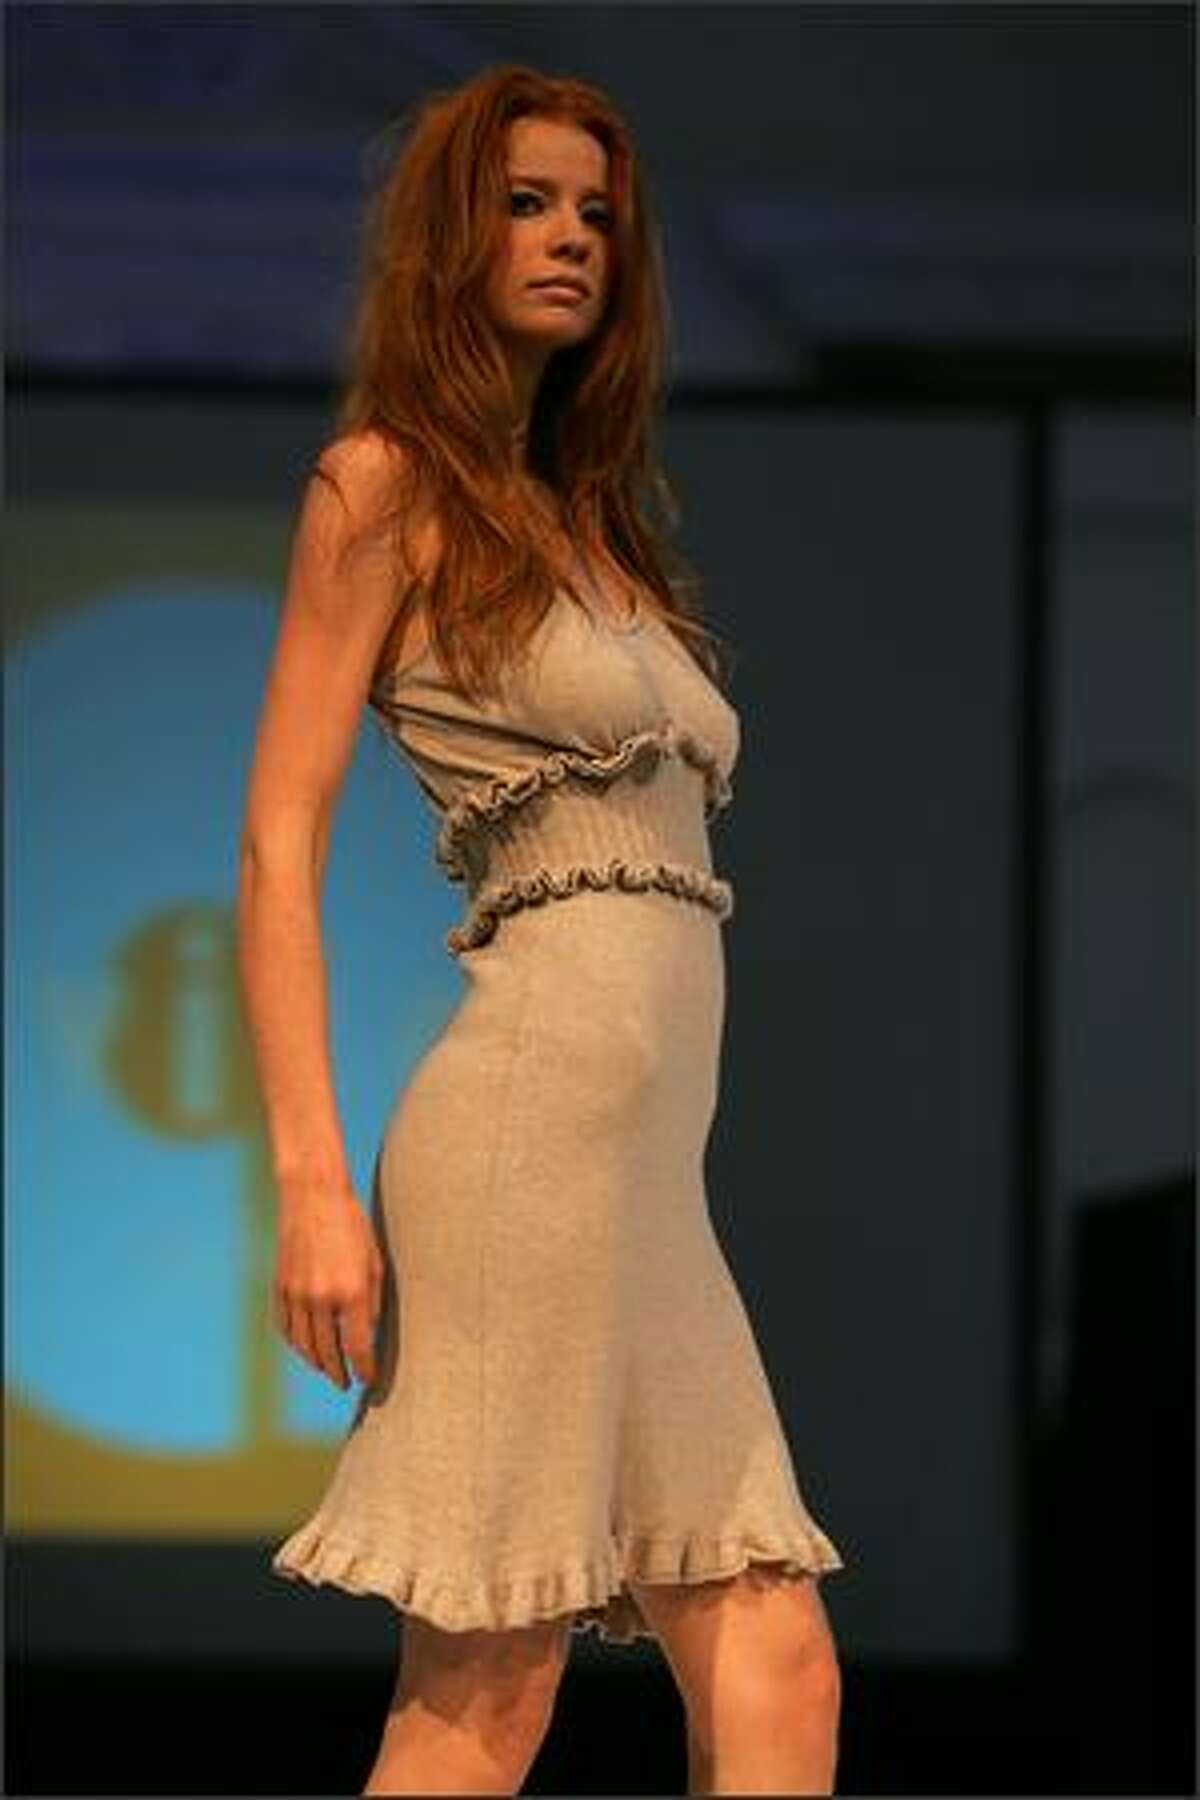 A model walks the runway during the Avita Spring 2008 Fashion Show at Vibiana on October 13, 2007 in Los Angeles, Calif.